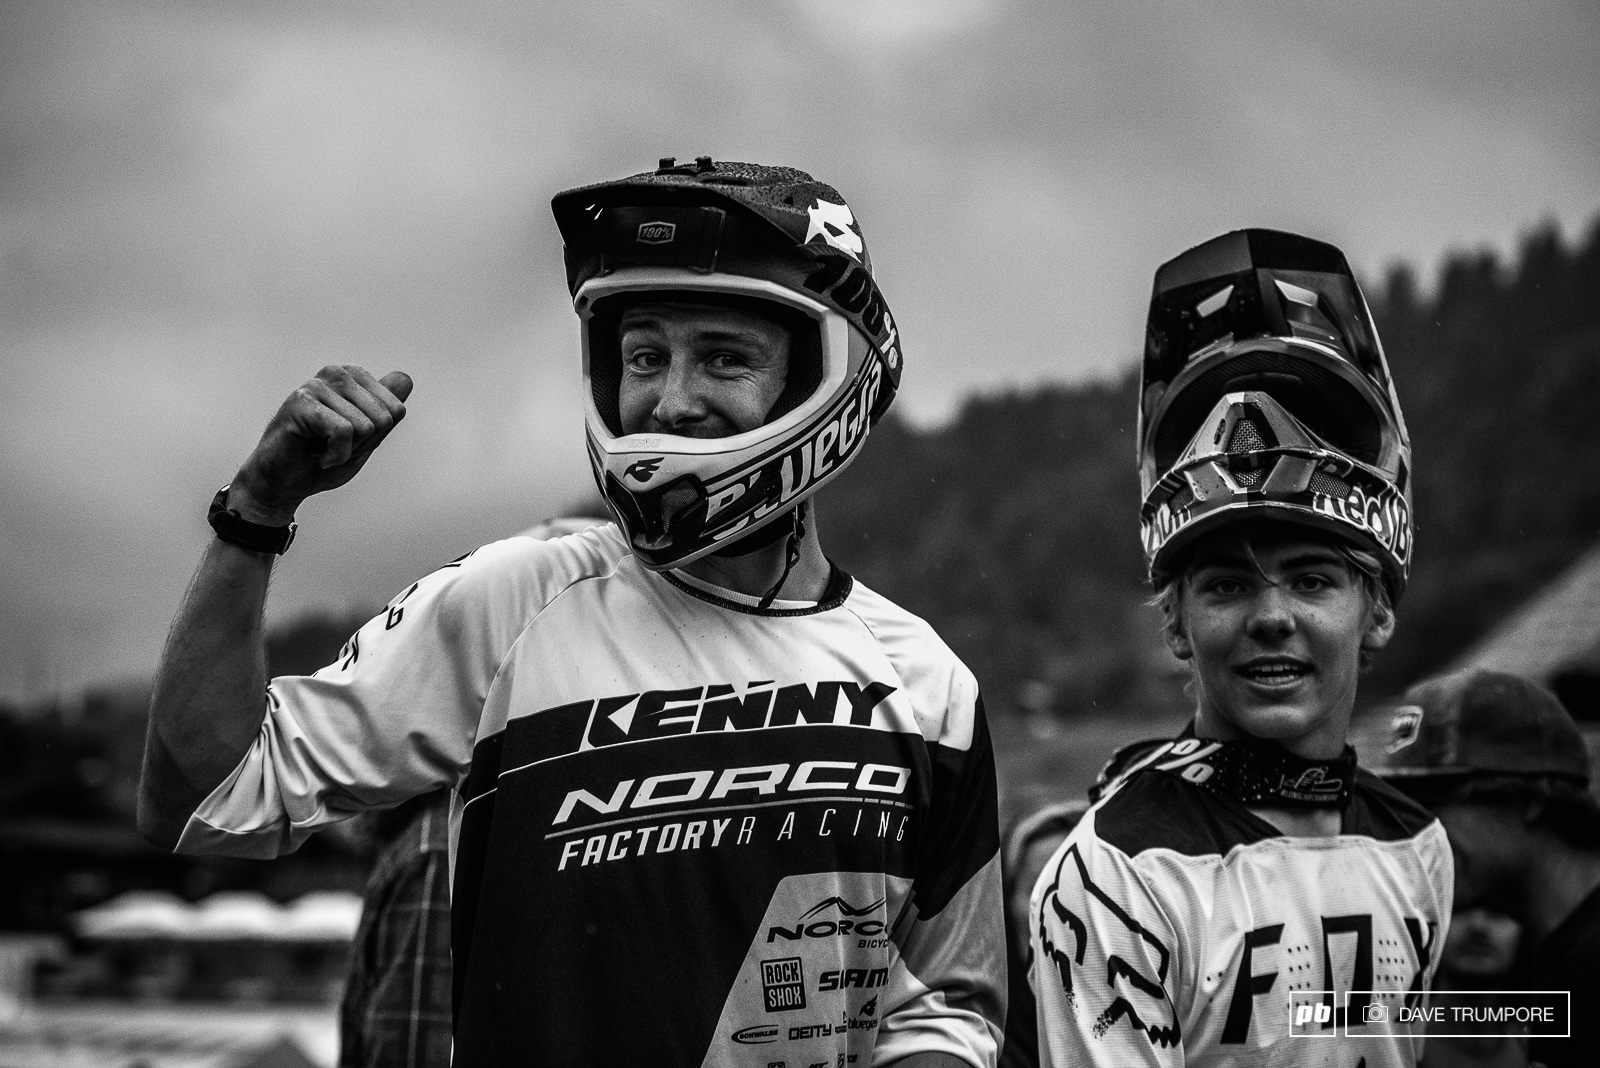 Sam Blenkinsop and Finn Iles less than excited about the thunderstorm quickly moving in.